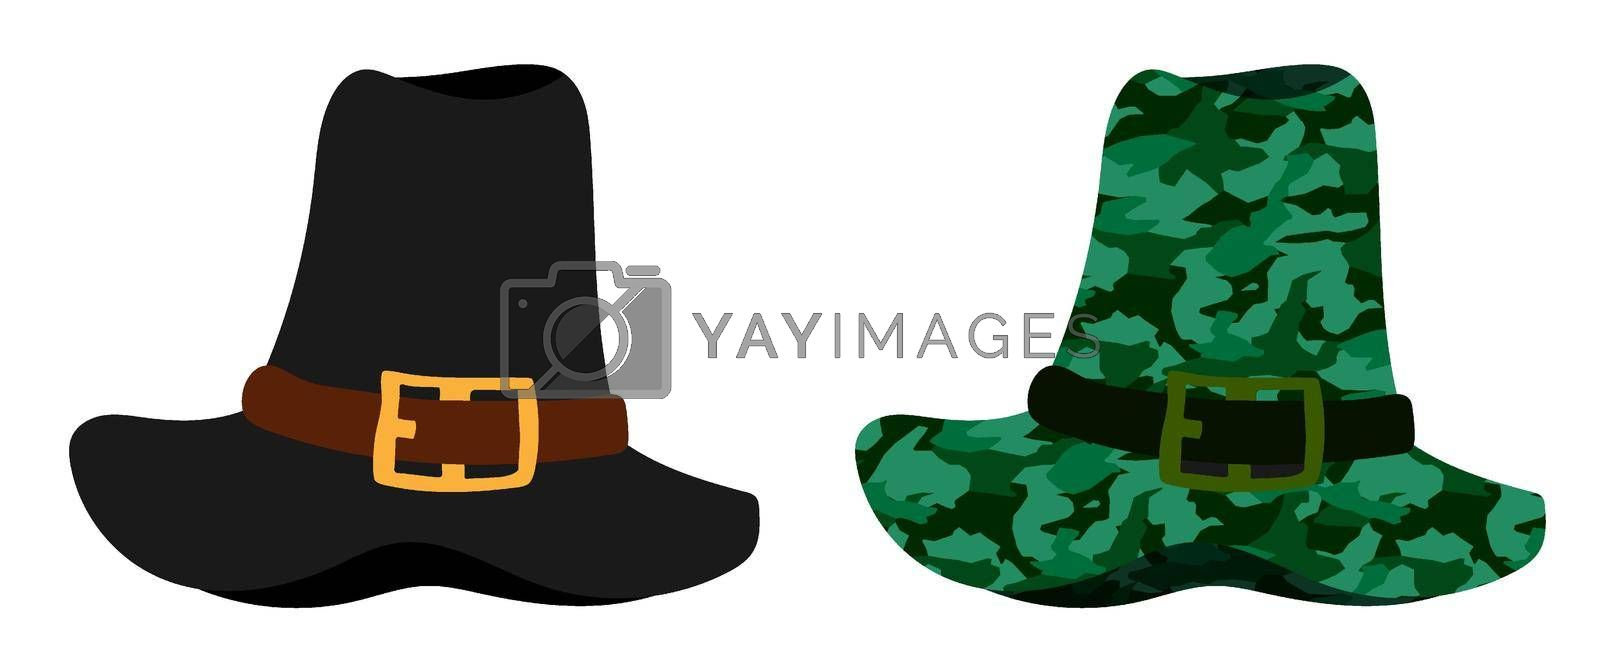 Tall pilgrim hat in natural colors and camouflage. Party wear for Thanksgiving. History of development of America. Vector in minimalistic flat style